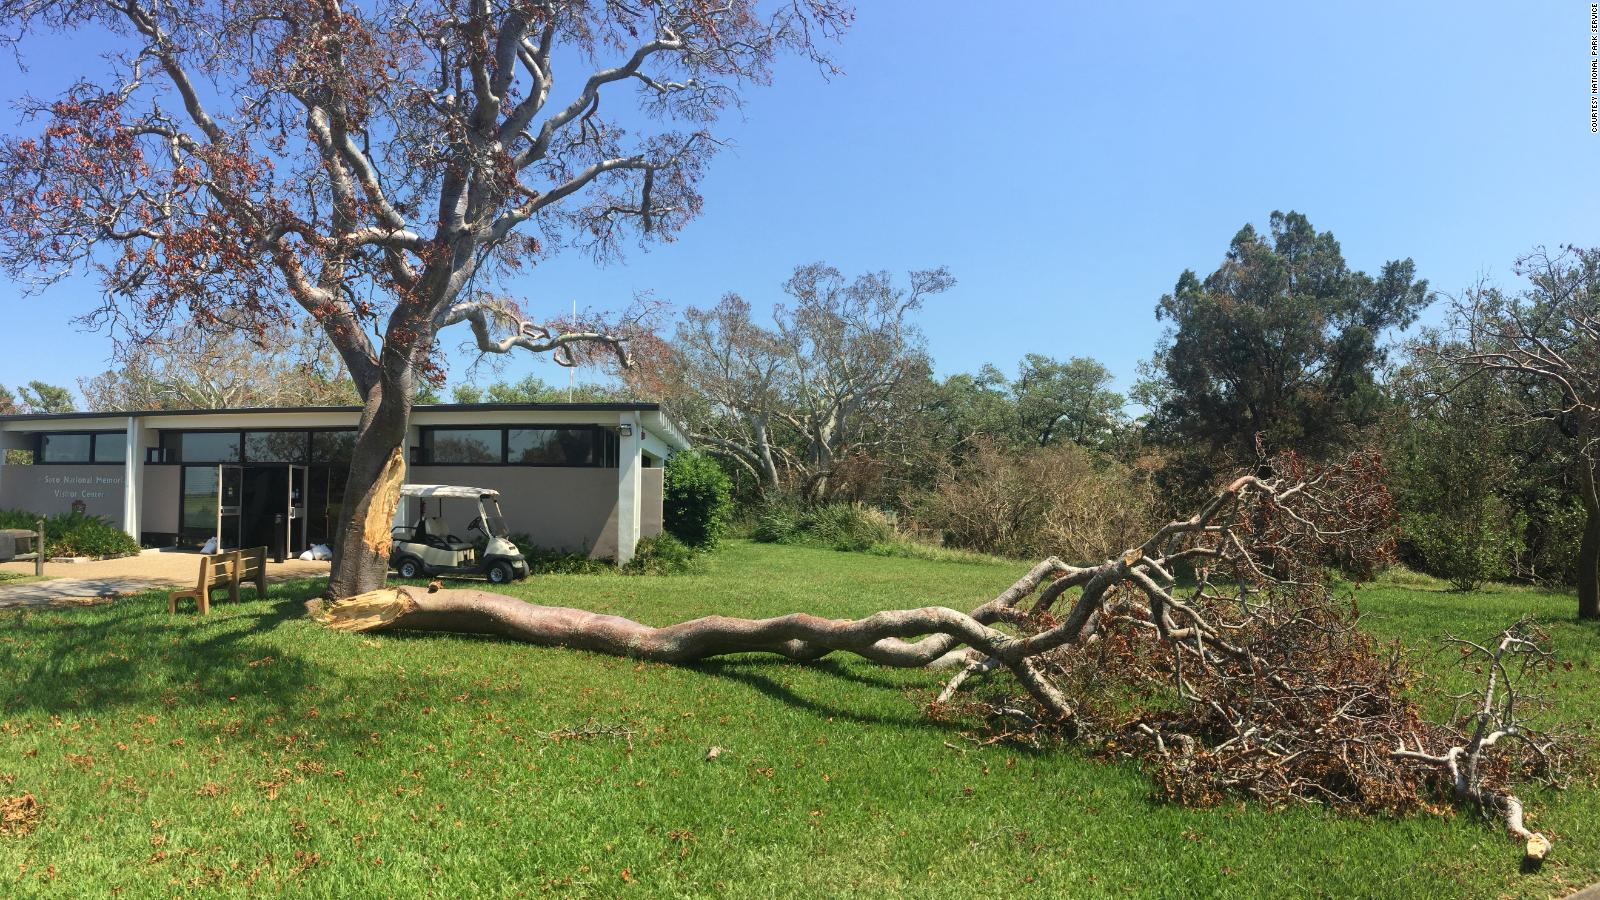 National Park Week 2018: Hurricanes couldn't knock out these ... on driveway home design, parking roof design, stations for cars parking design,